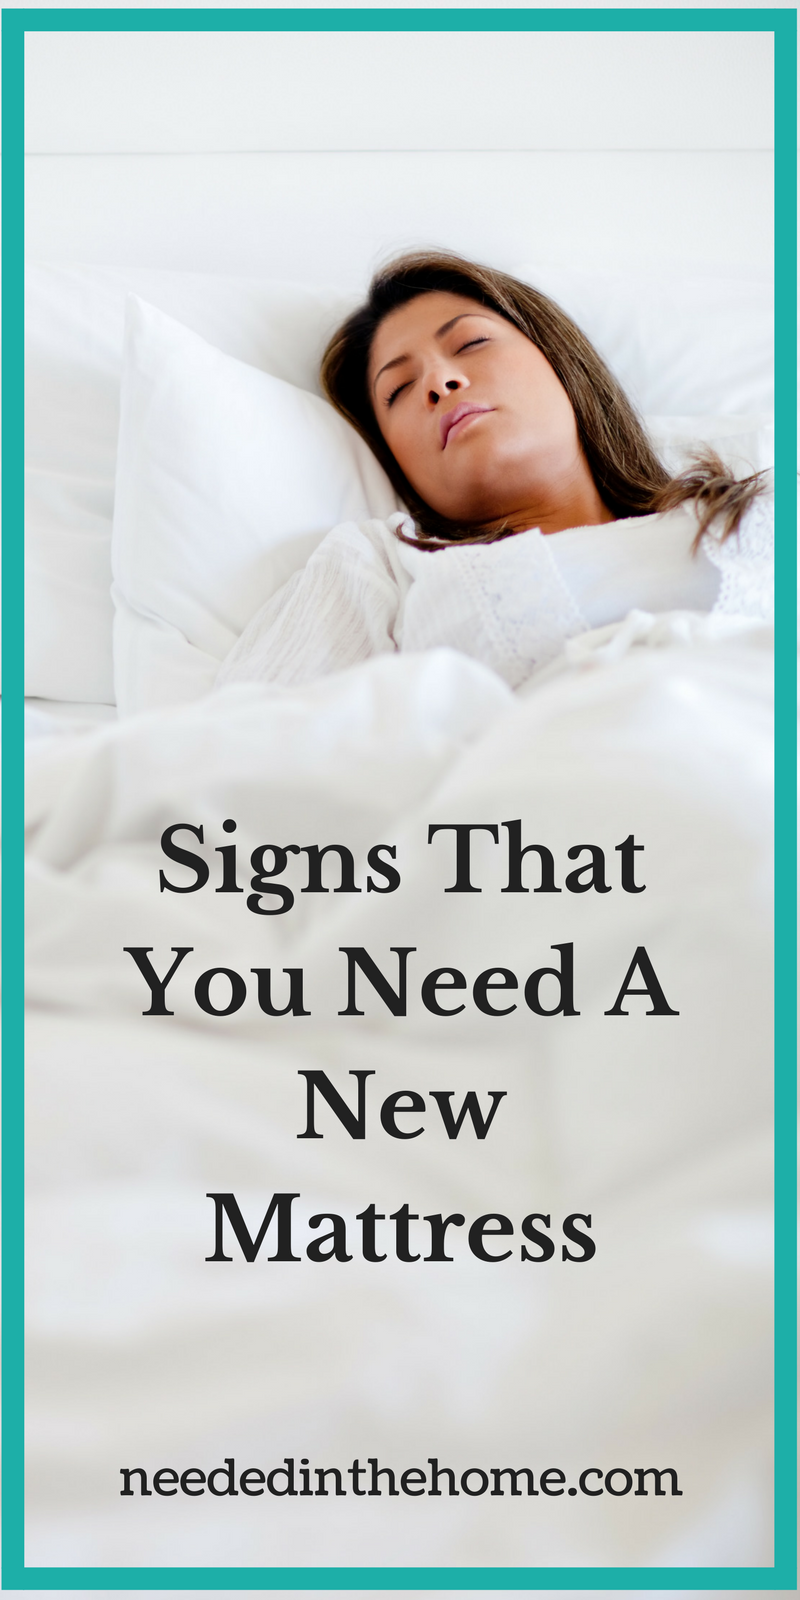 Woman sleeping Signs That You Need A New Mattress